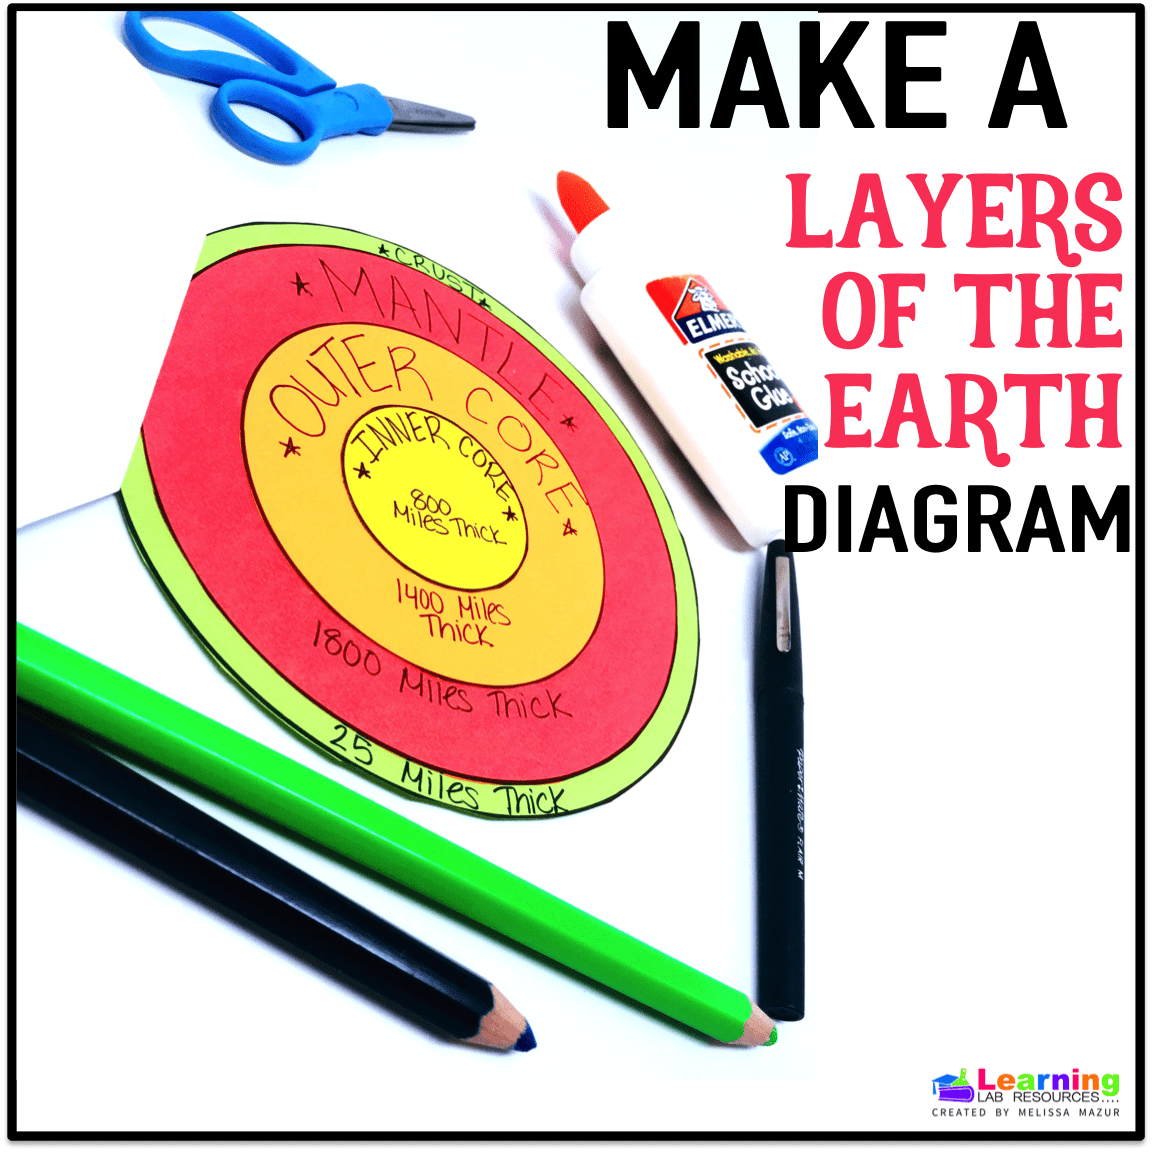 Free layers of the earth diagram learning lab resources pooptronica Images